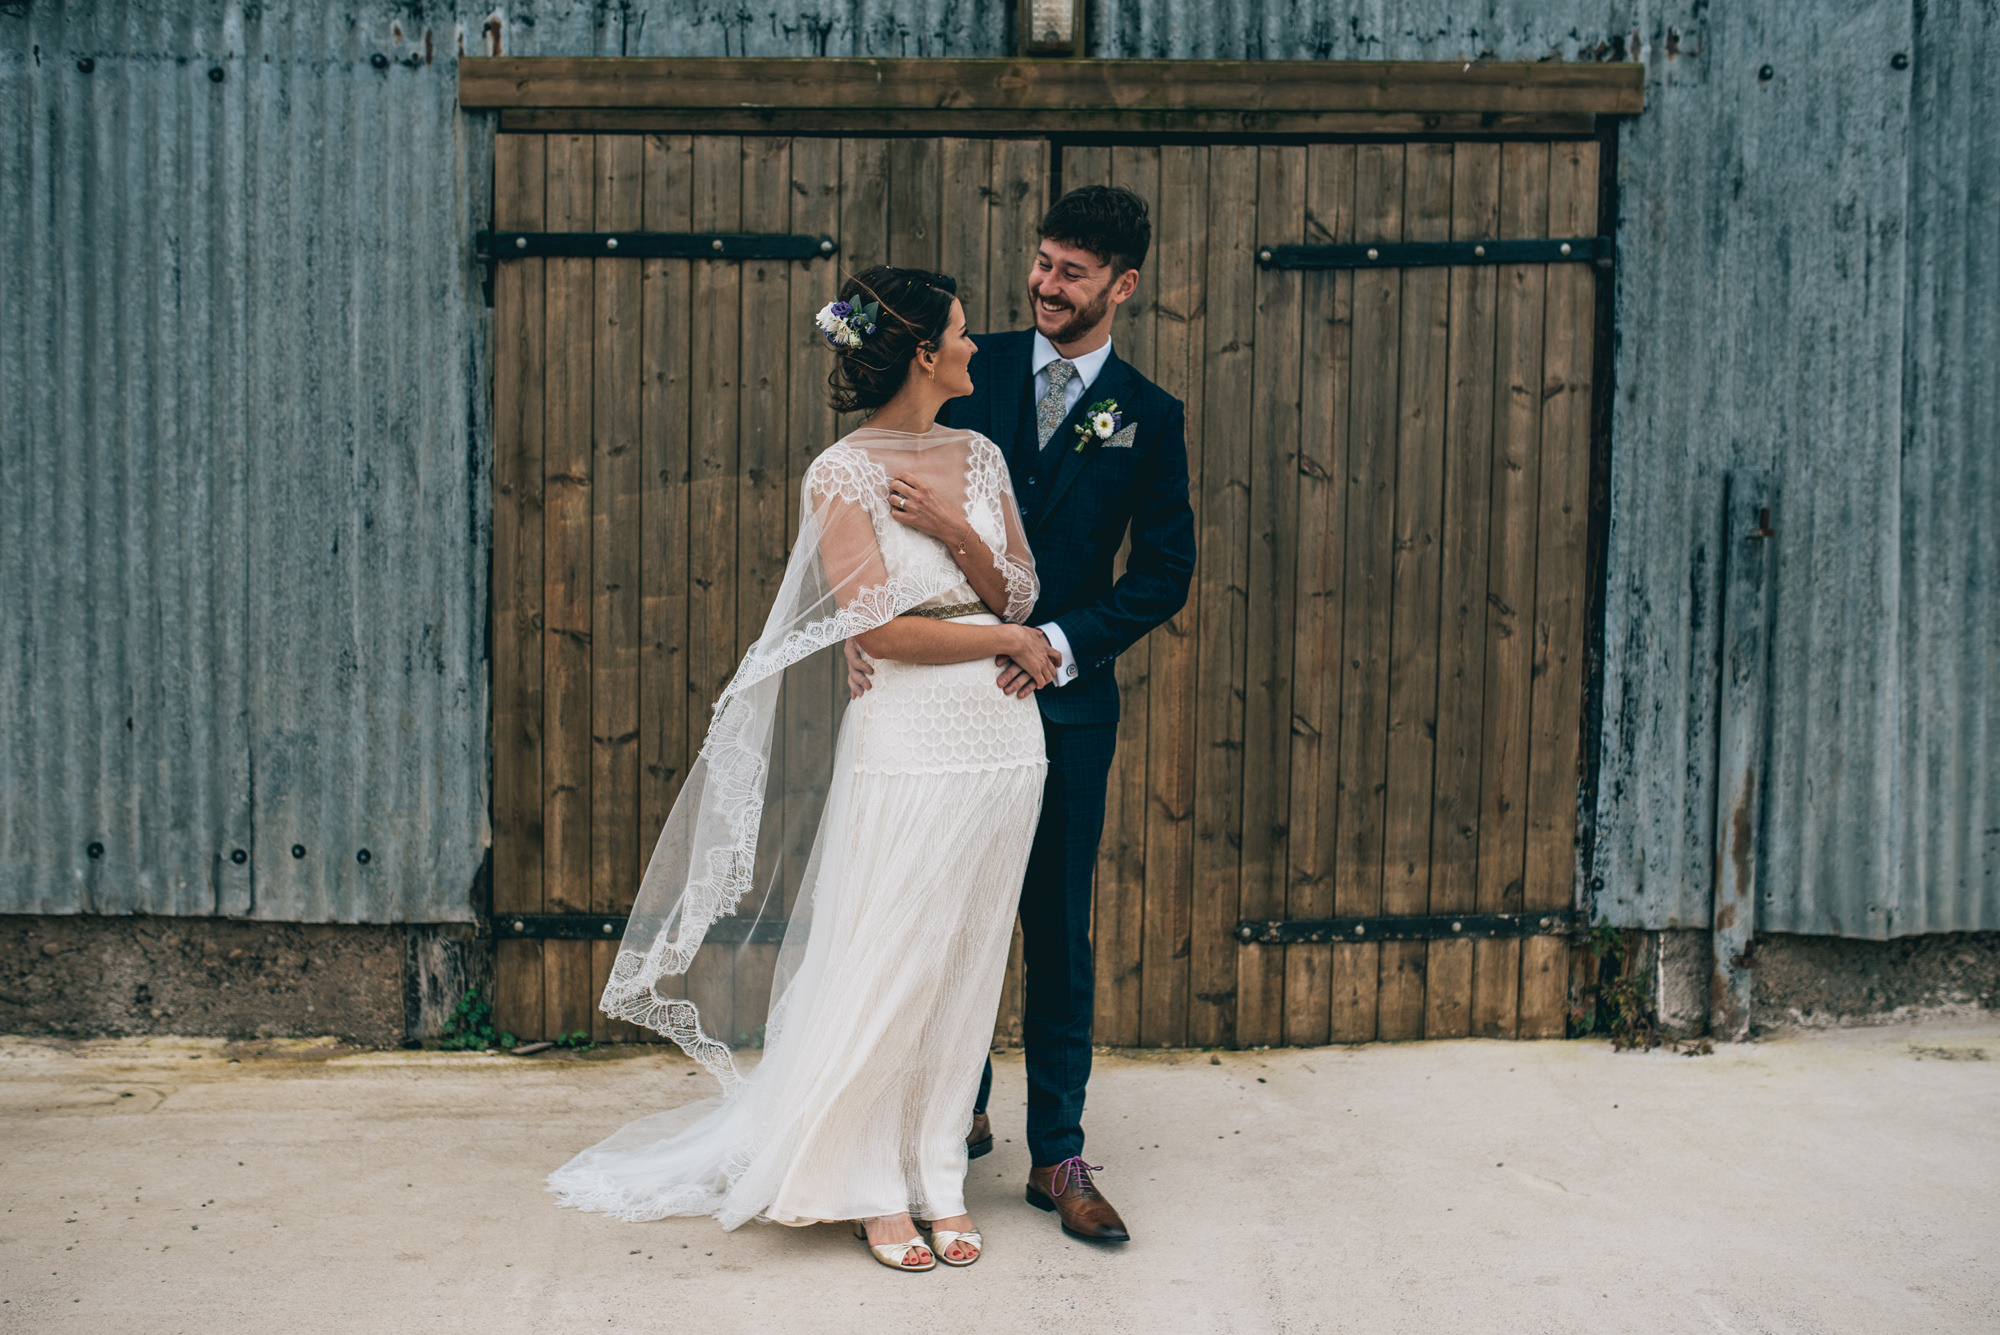 Kate-Beaumont-Sheffield-Lucy-Bohemian-Lace-Dress-Barn-Wedding-Cumbria-22.jpg